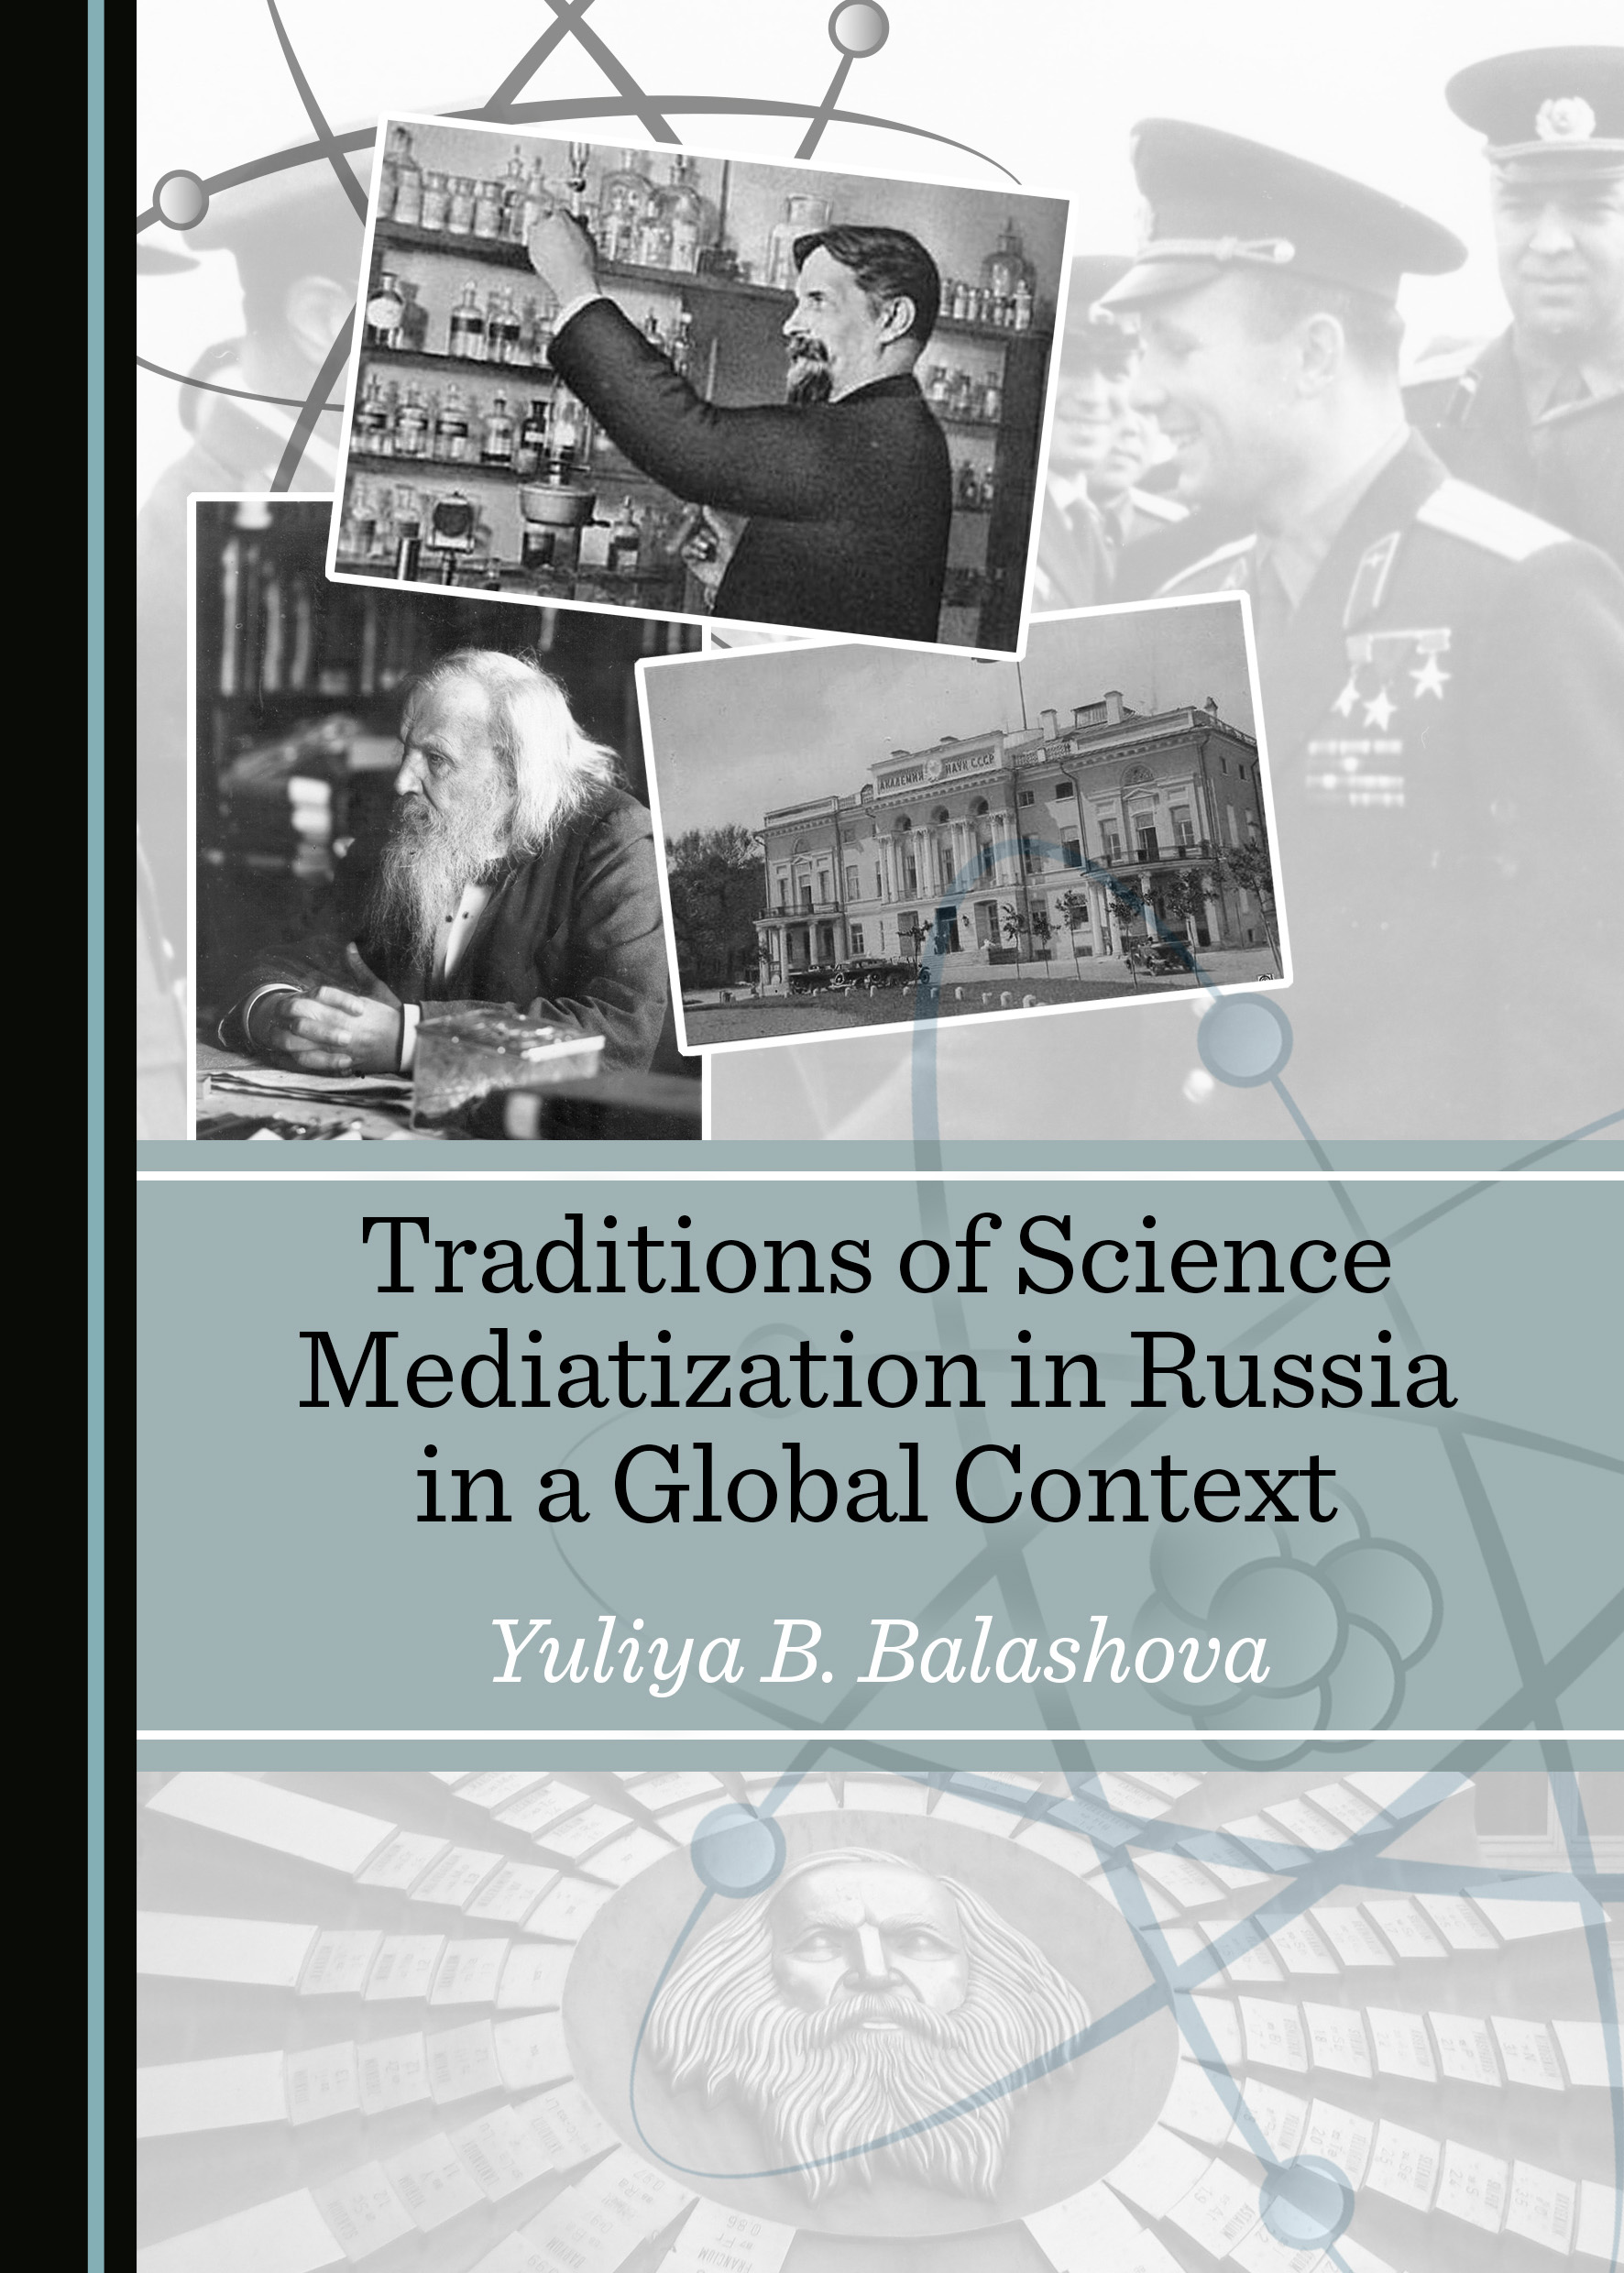 Traditions of Science Mediatization in Russia in a Global Context